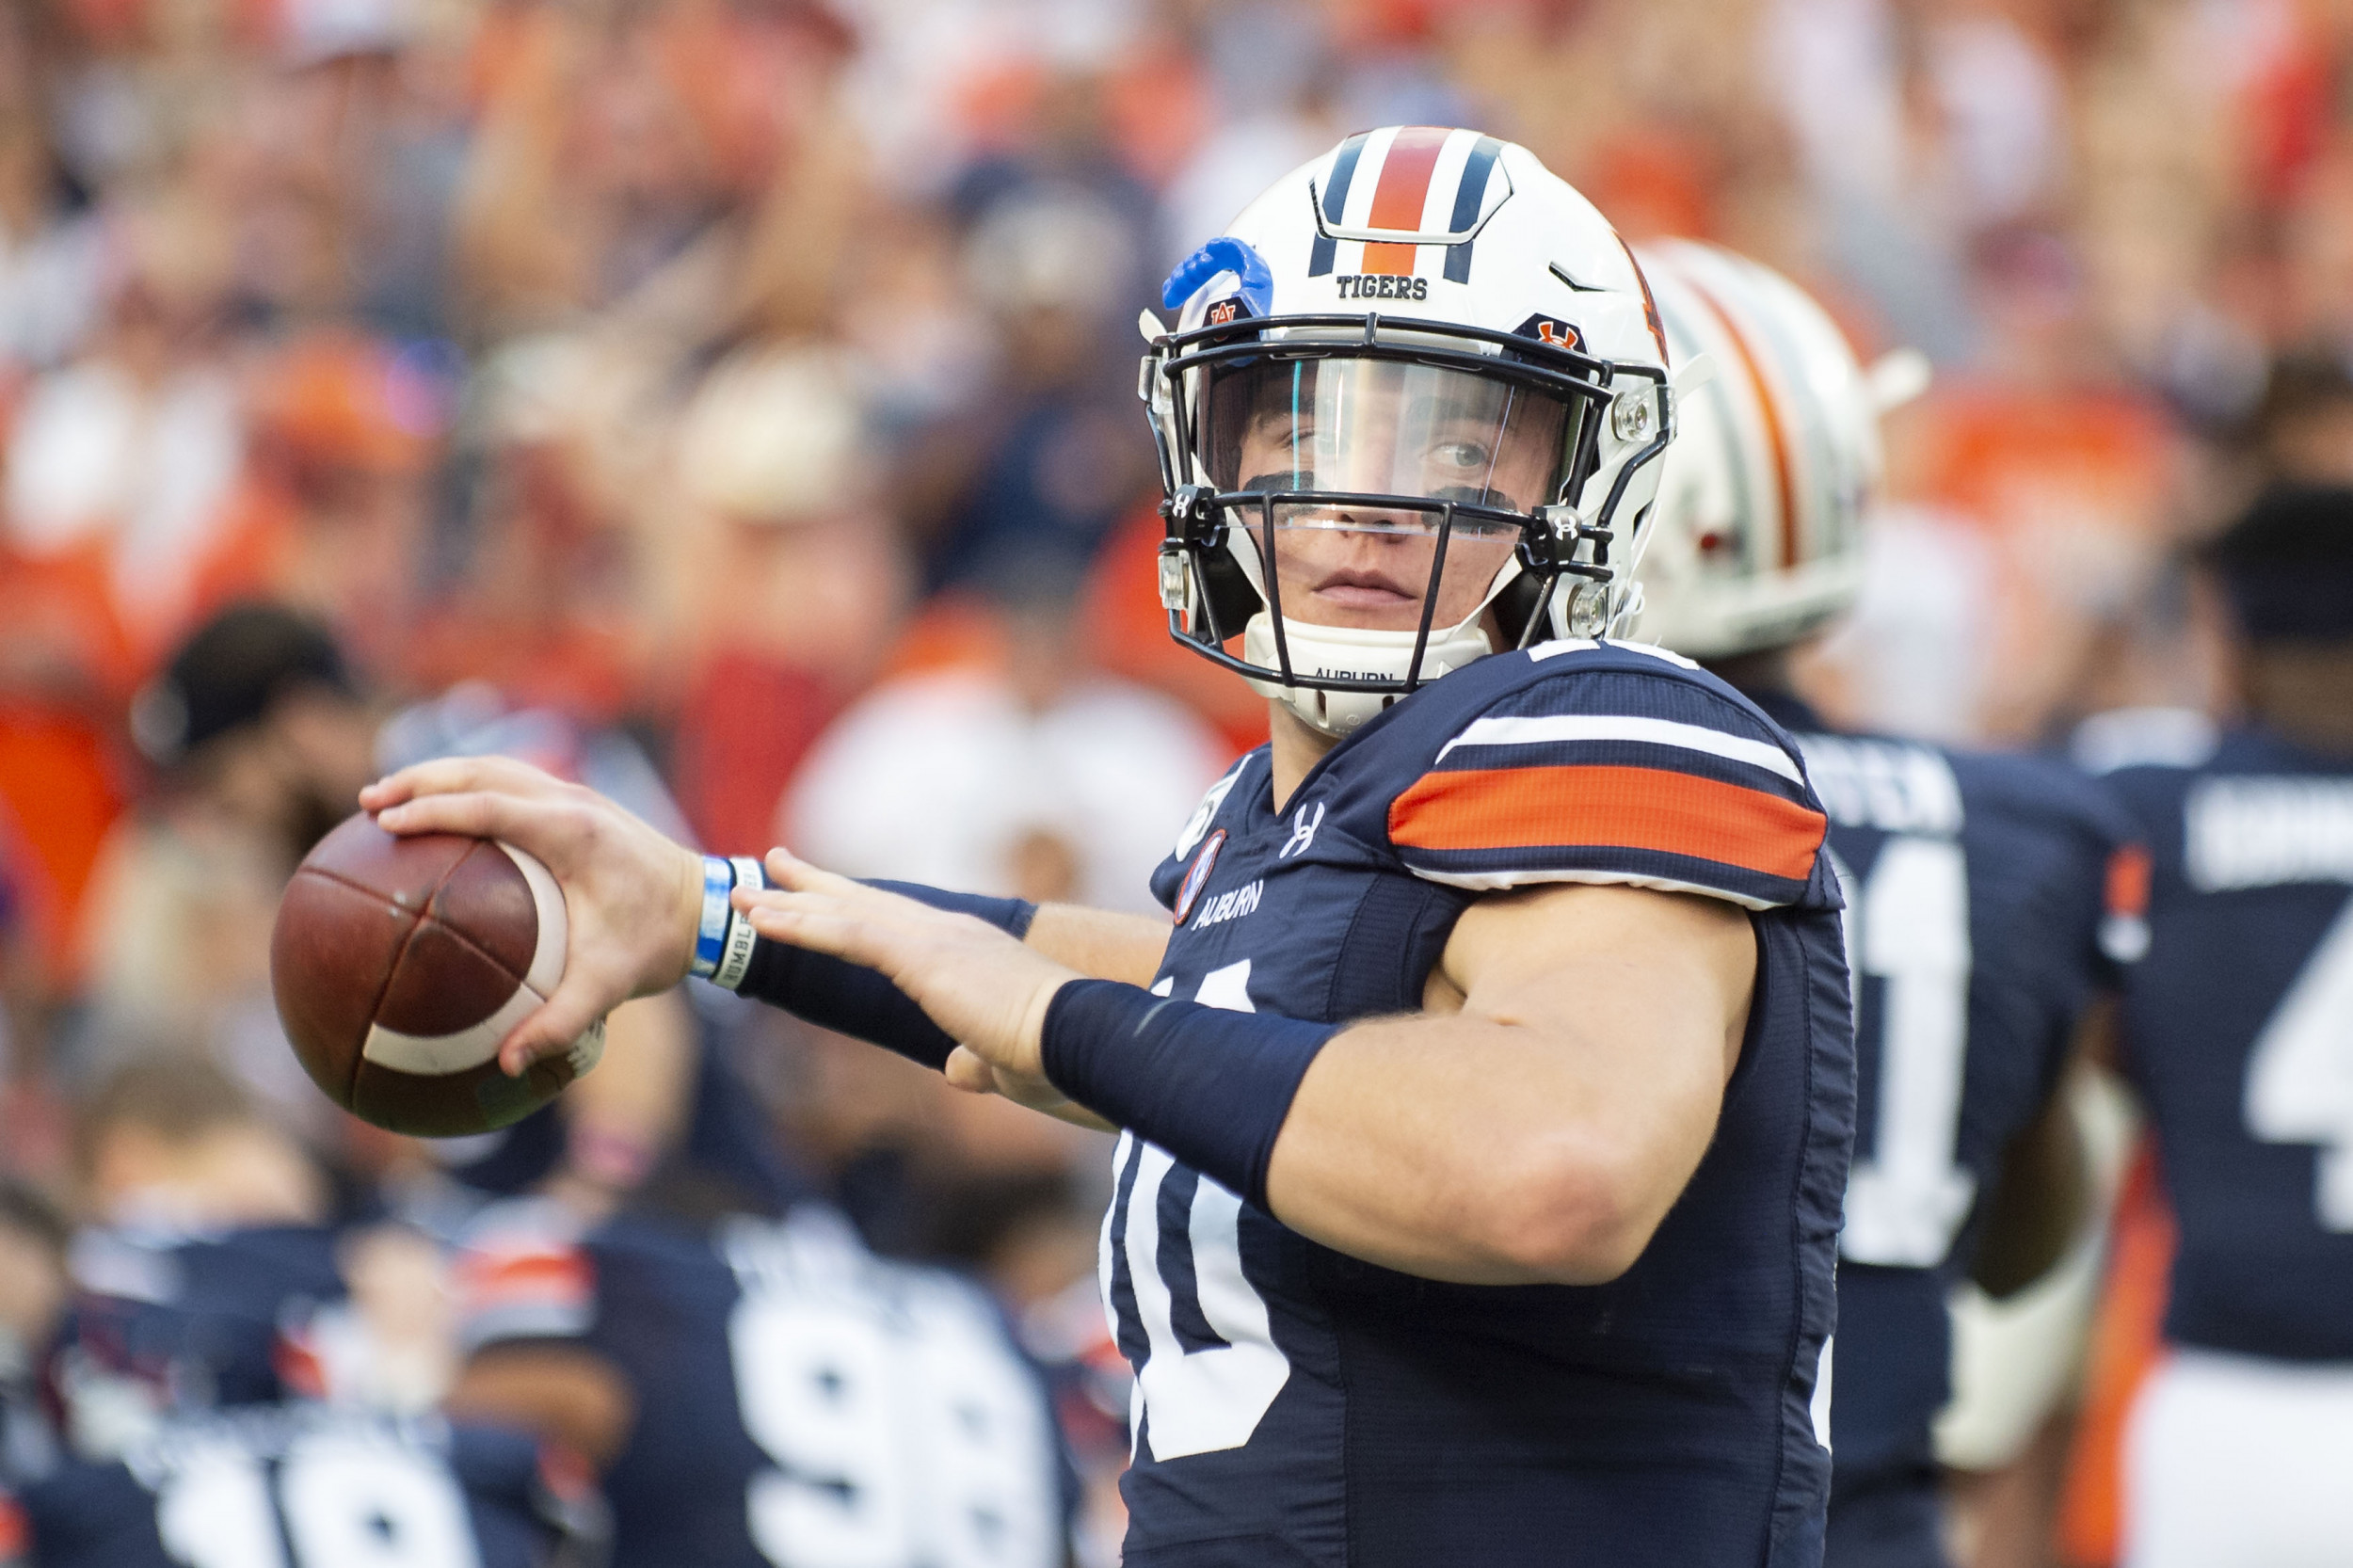 College Football TV Schedule Where To Watch Auburn Vs Florida TV Channel Live Stream And Odds